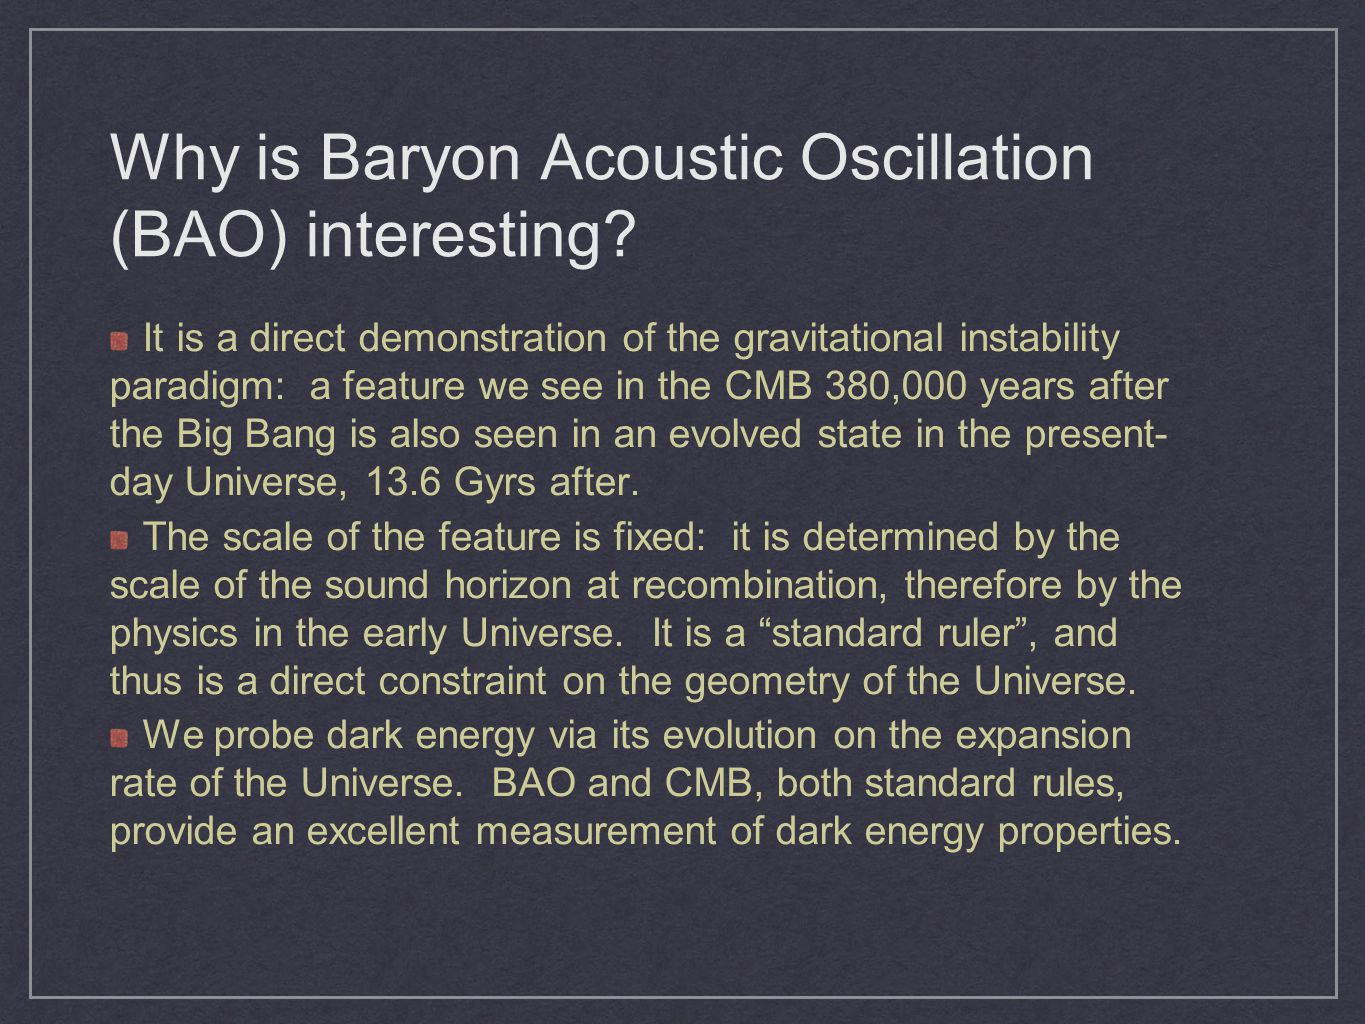 Why is Baryon Acoustic Oscillation (BAO) interesting? It is a direct demonstration of the gravitational instability paradigm: a feature we see in the